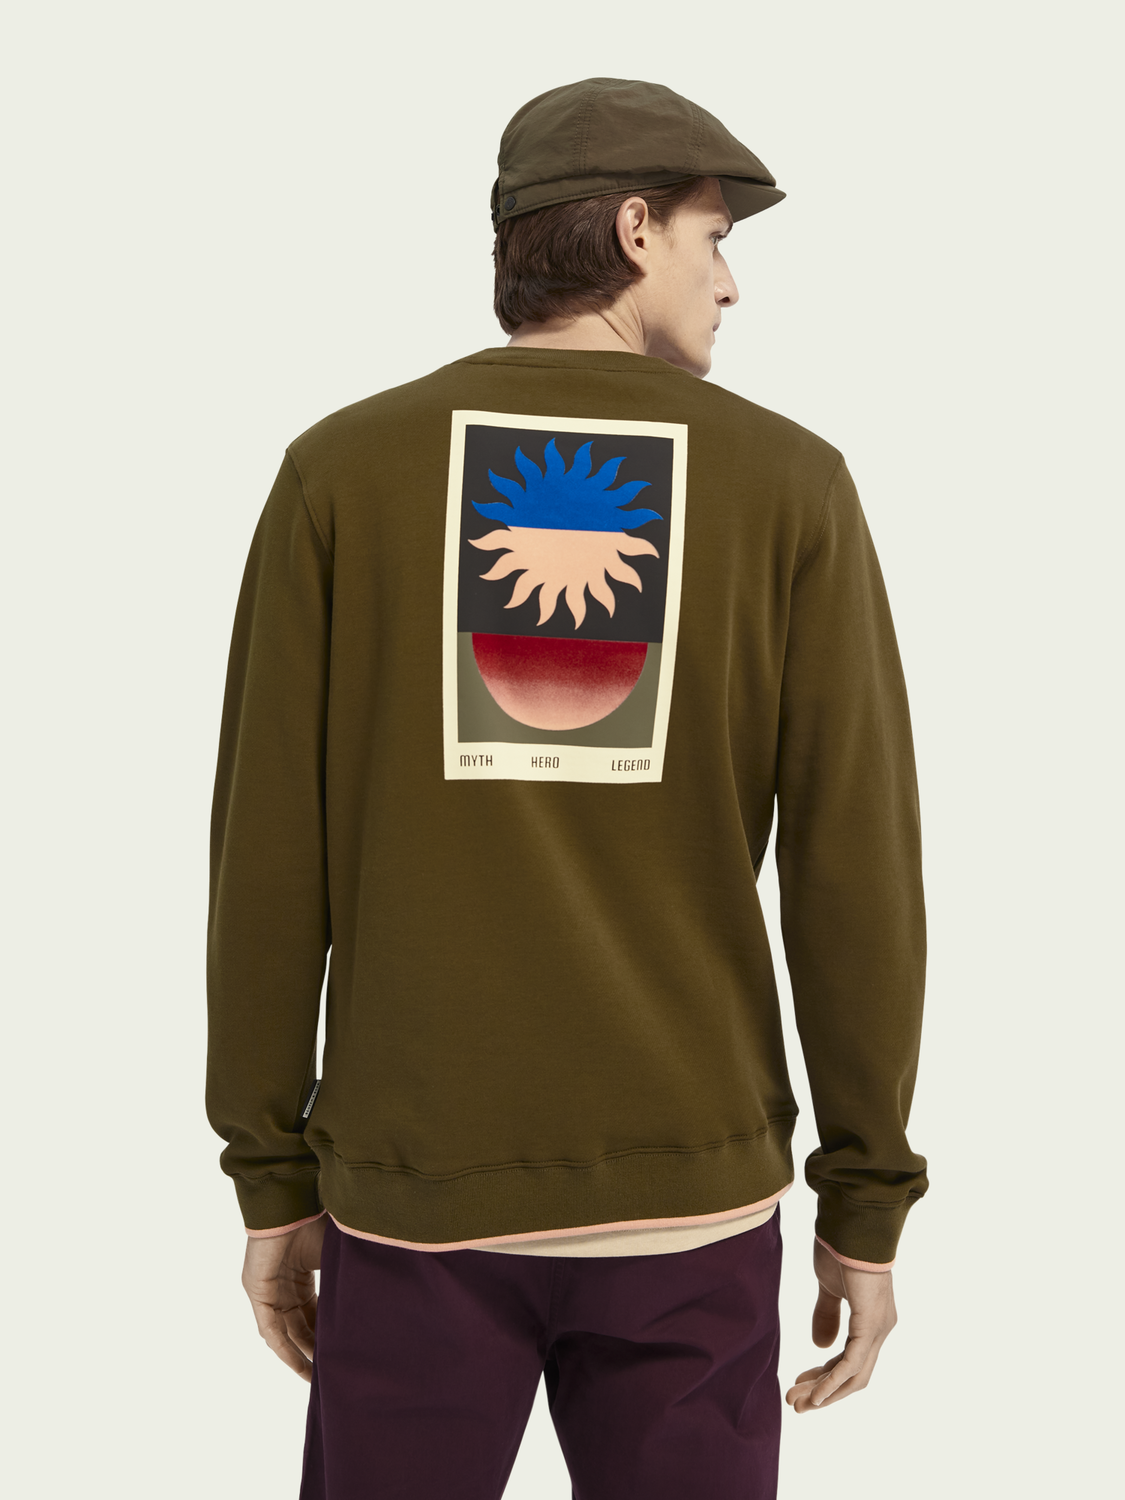 Heren Sweater met artwork